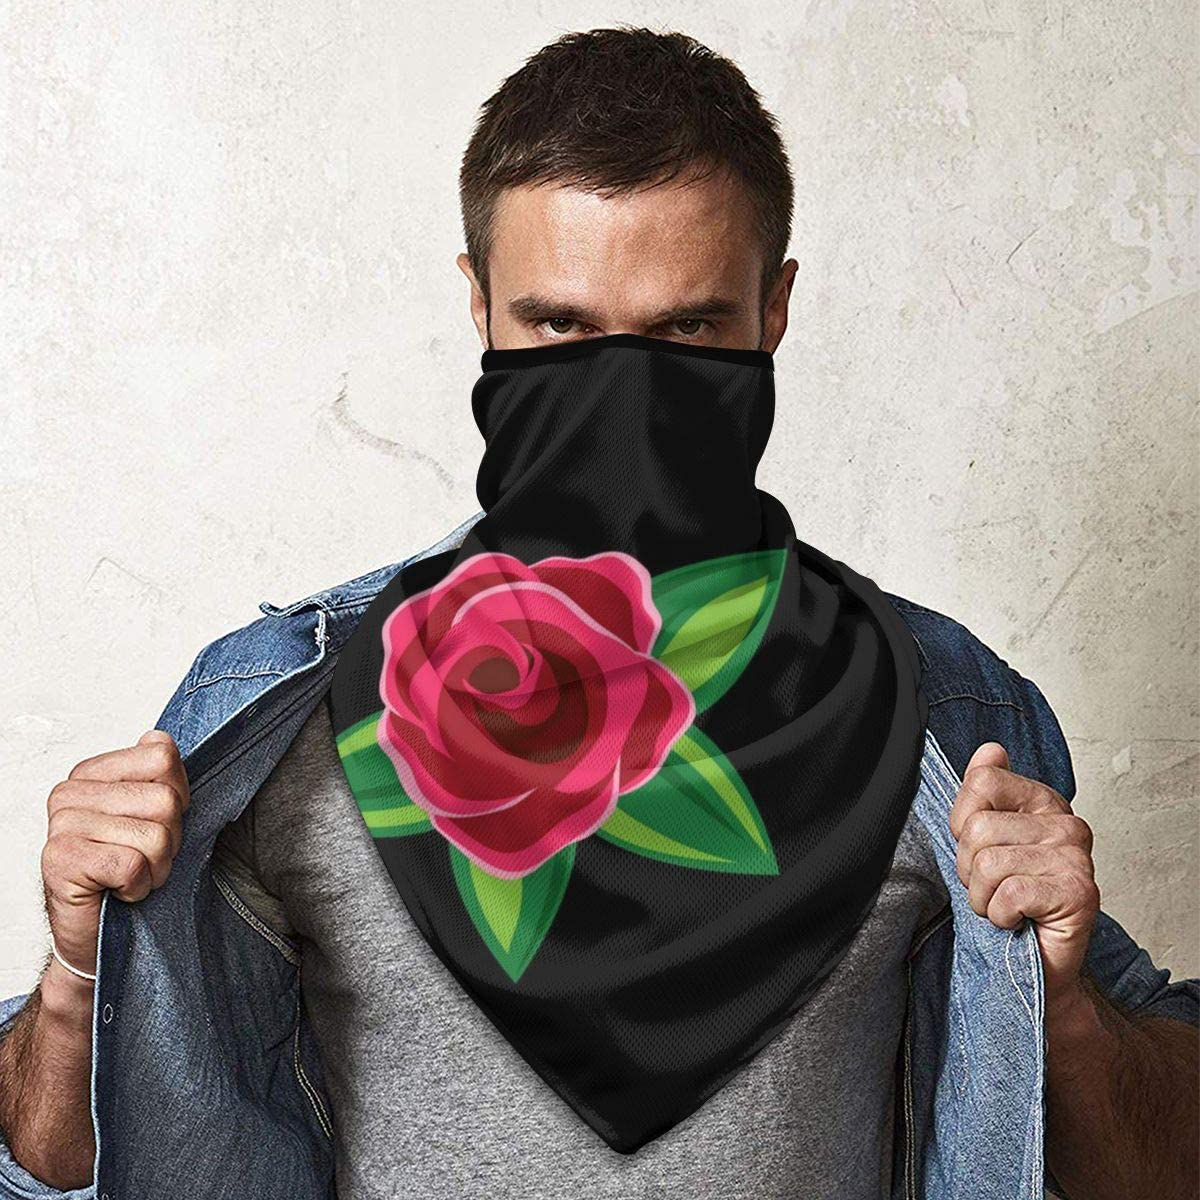 Simple Seamless Floral Roses Pattern Vector Image Neck Gaiter Dust Sun Protection Face Cover Balaclava Sports Headwear Works As Scarf Headband Bandana Face Mask